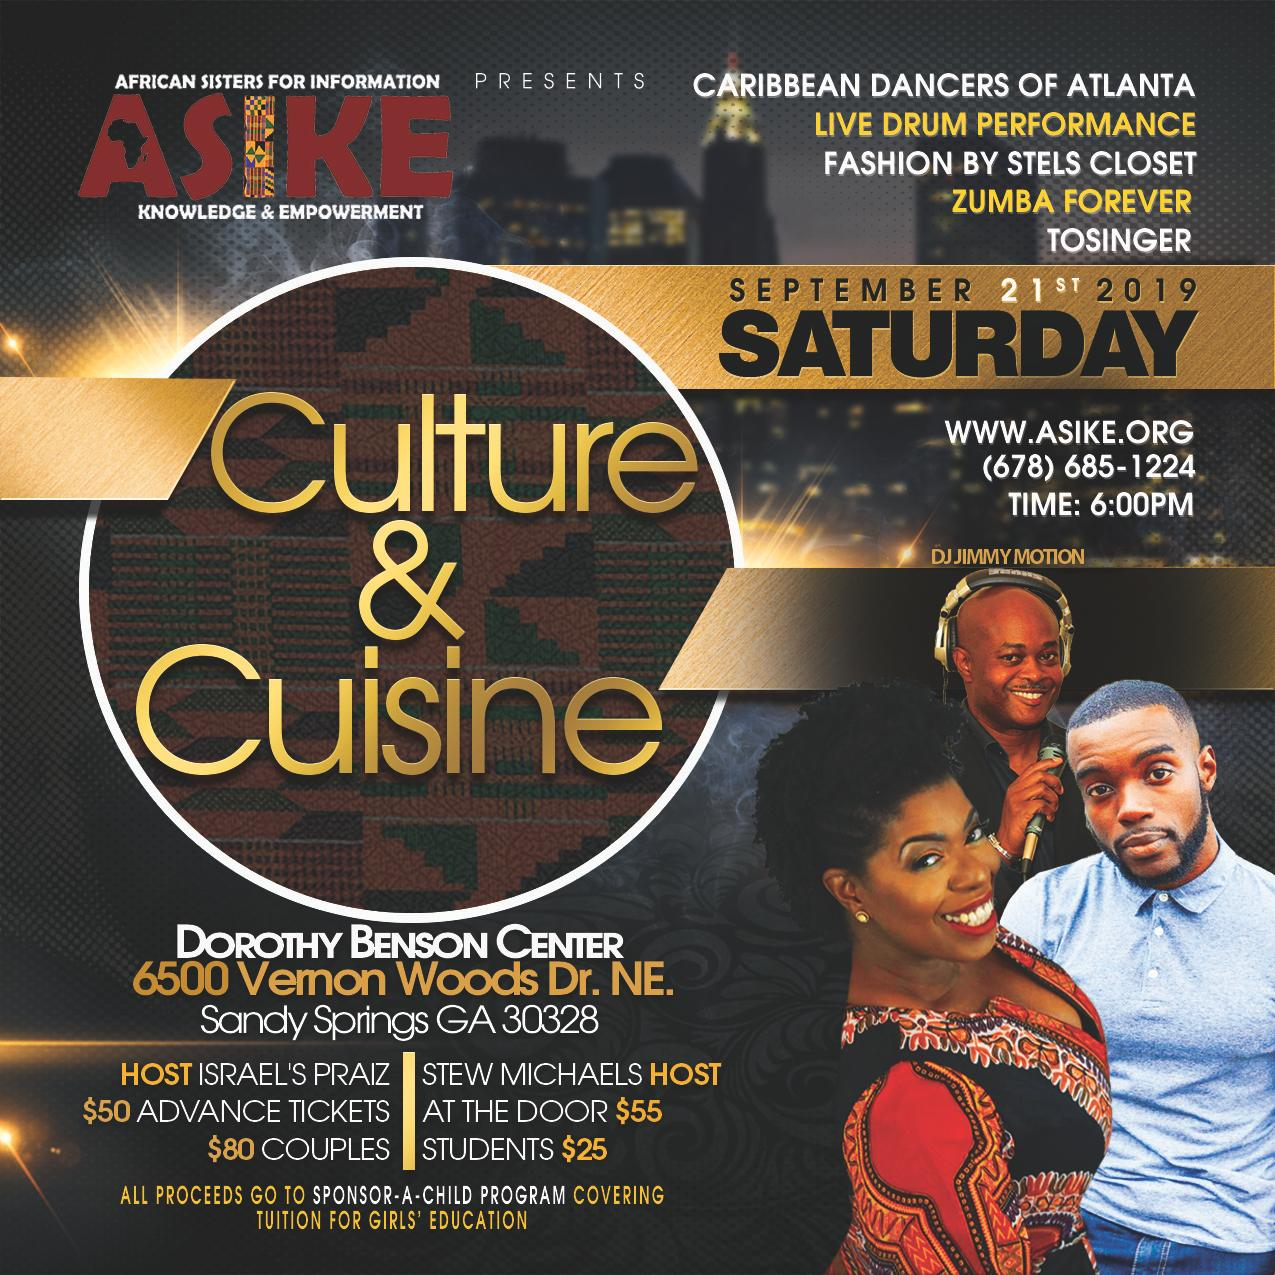 You are invited - 2019 African Culture & Cuisine - Sat Sep 21, 2019 @ 6:00 pm @ Dorothy Benson Center, Sandy Springs GA